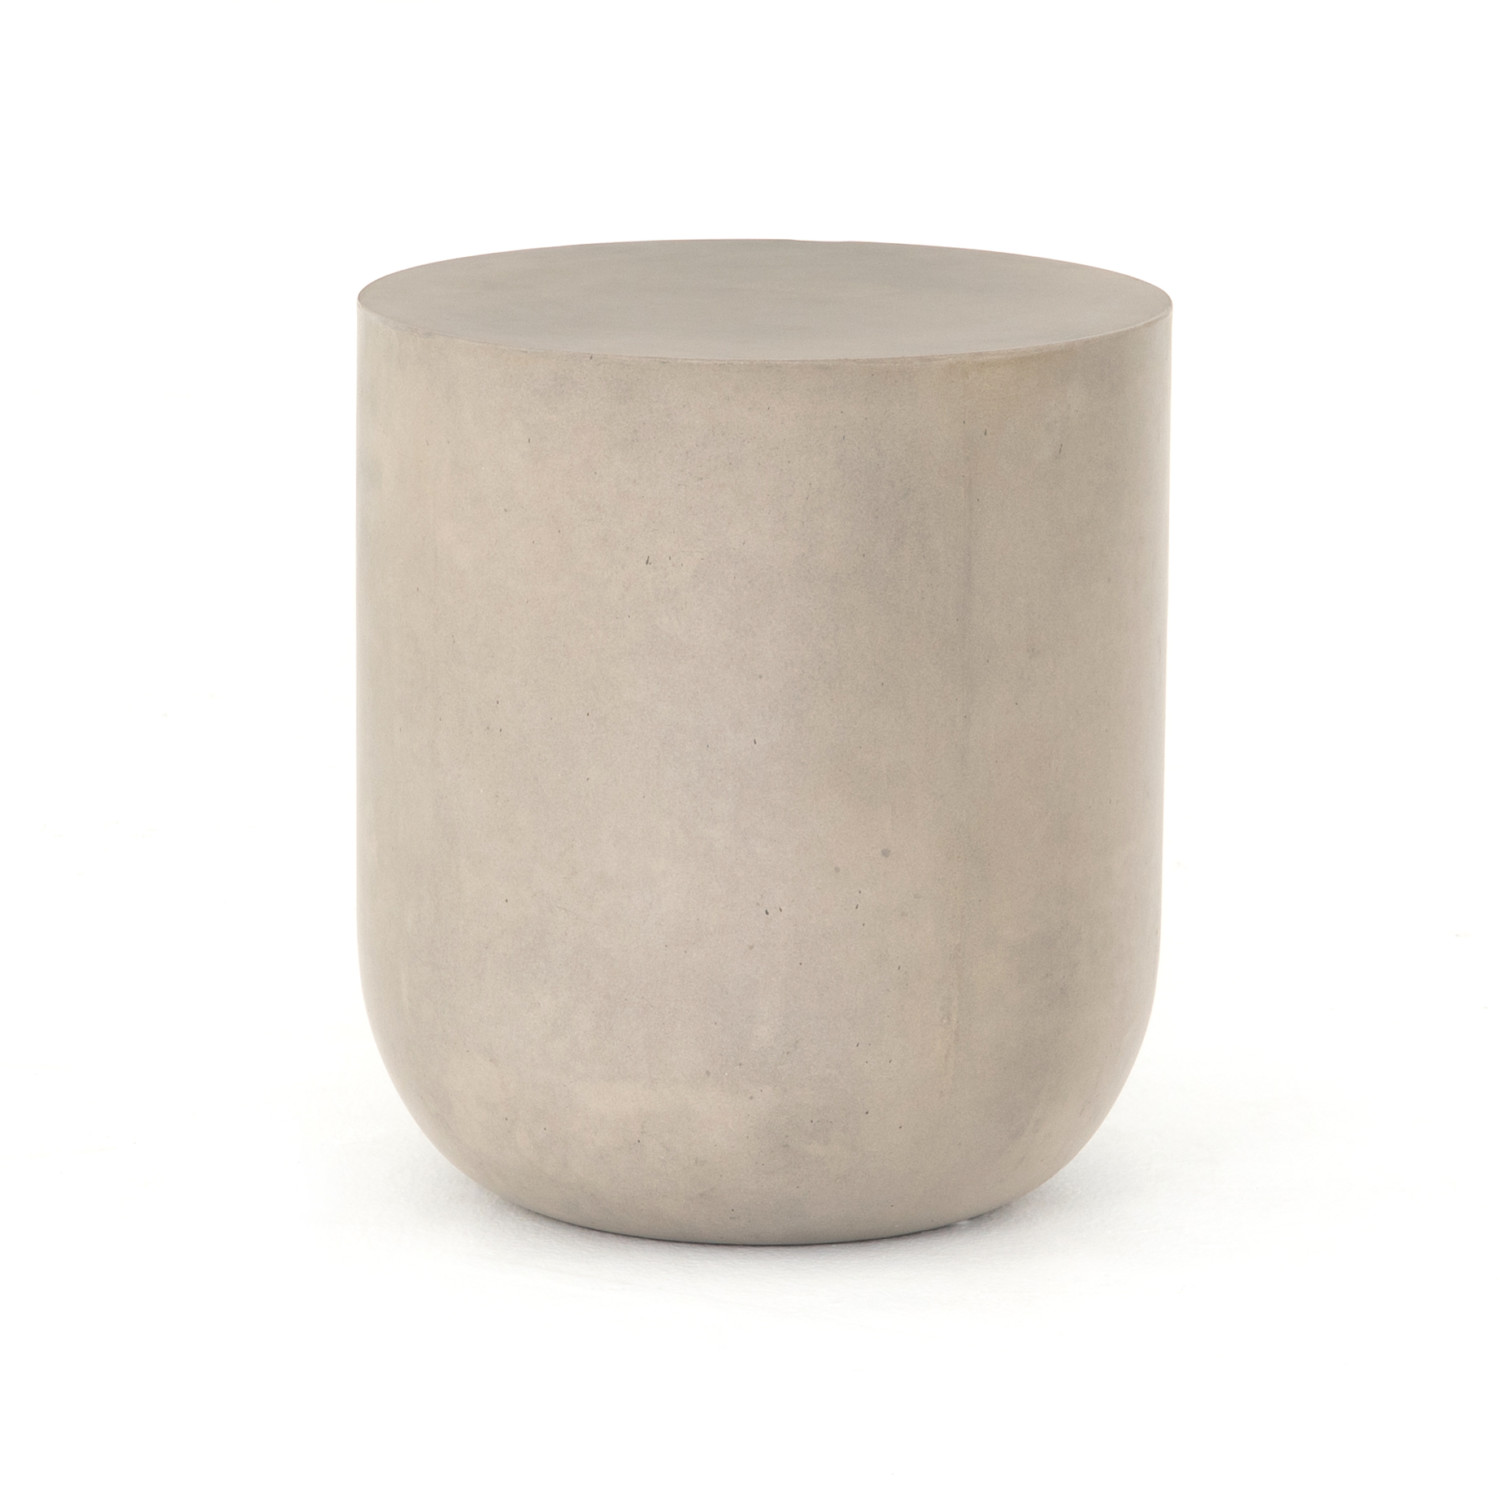 Picture of: Mod Concrete Round End Table Eclectic Goods Eclectic Goods